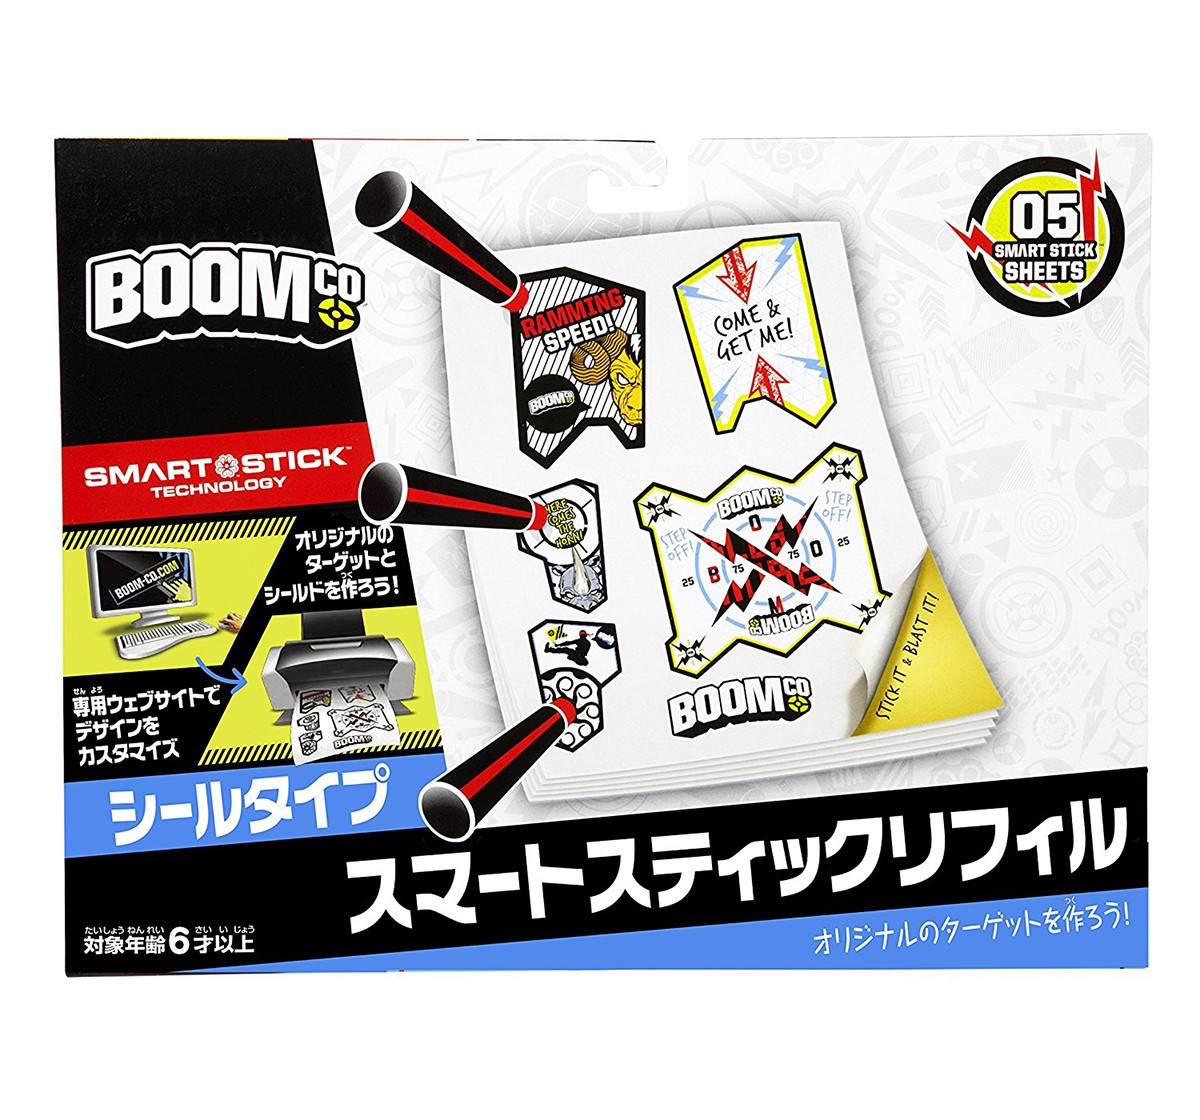 Boomco Printable Target Stickers A4, Multi Color Blasters for Kids age 6Y+